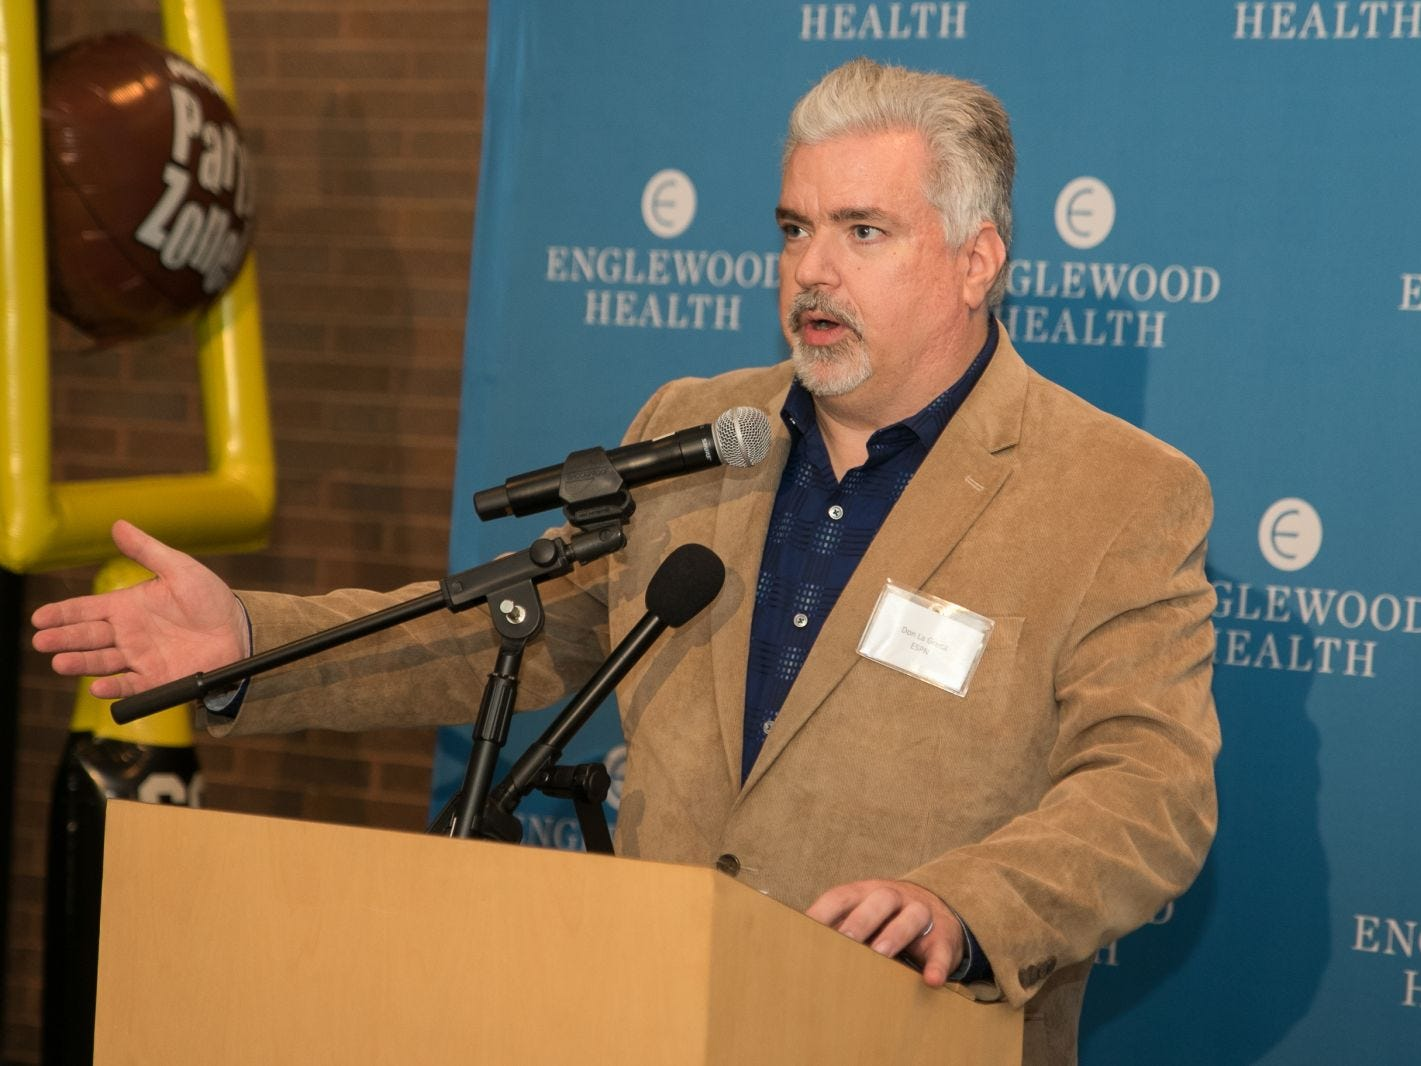 Don La Greca of  ESPN radio. Englewood Health hosted its Men's Health and Football event with former Jets and Giants players and Don La Greca from ESPN radio. Attendees watched the Thursday night football game while receiving advice about staying healthy and tackling health problems early on. 09/20/2018